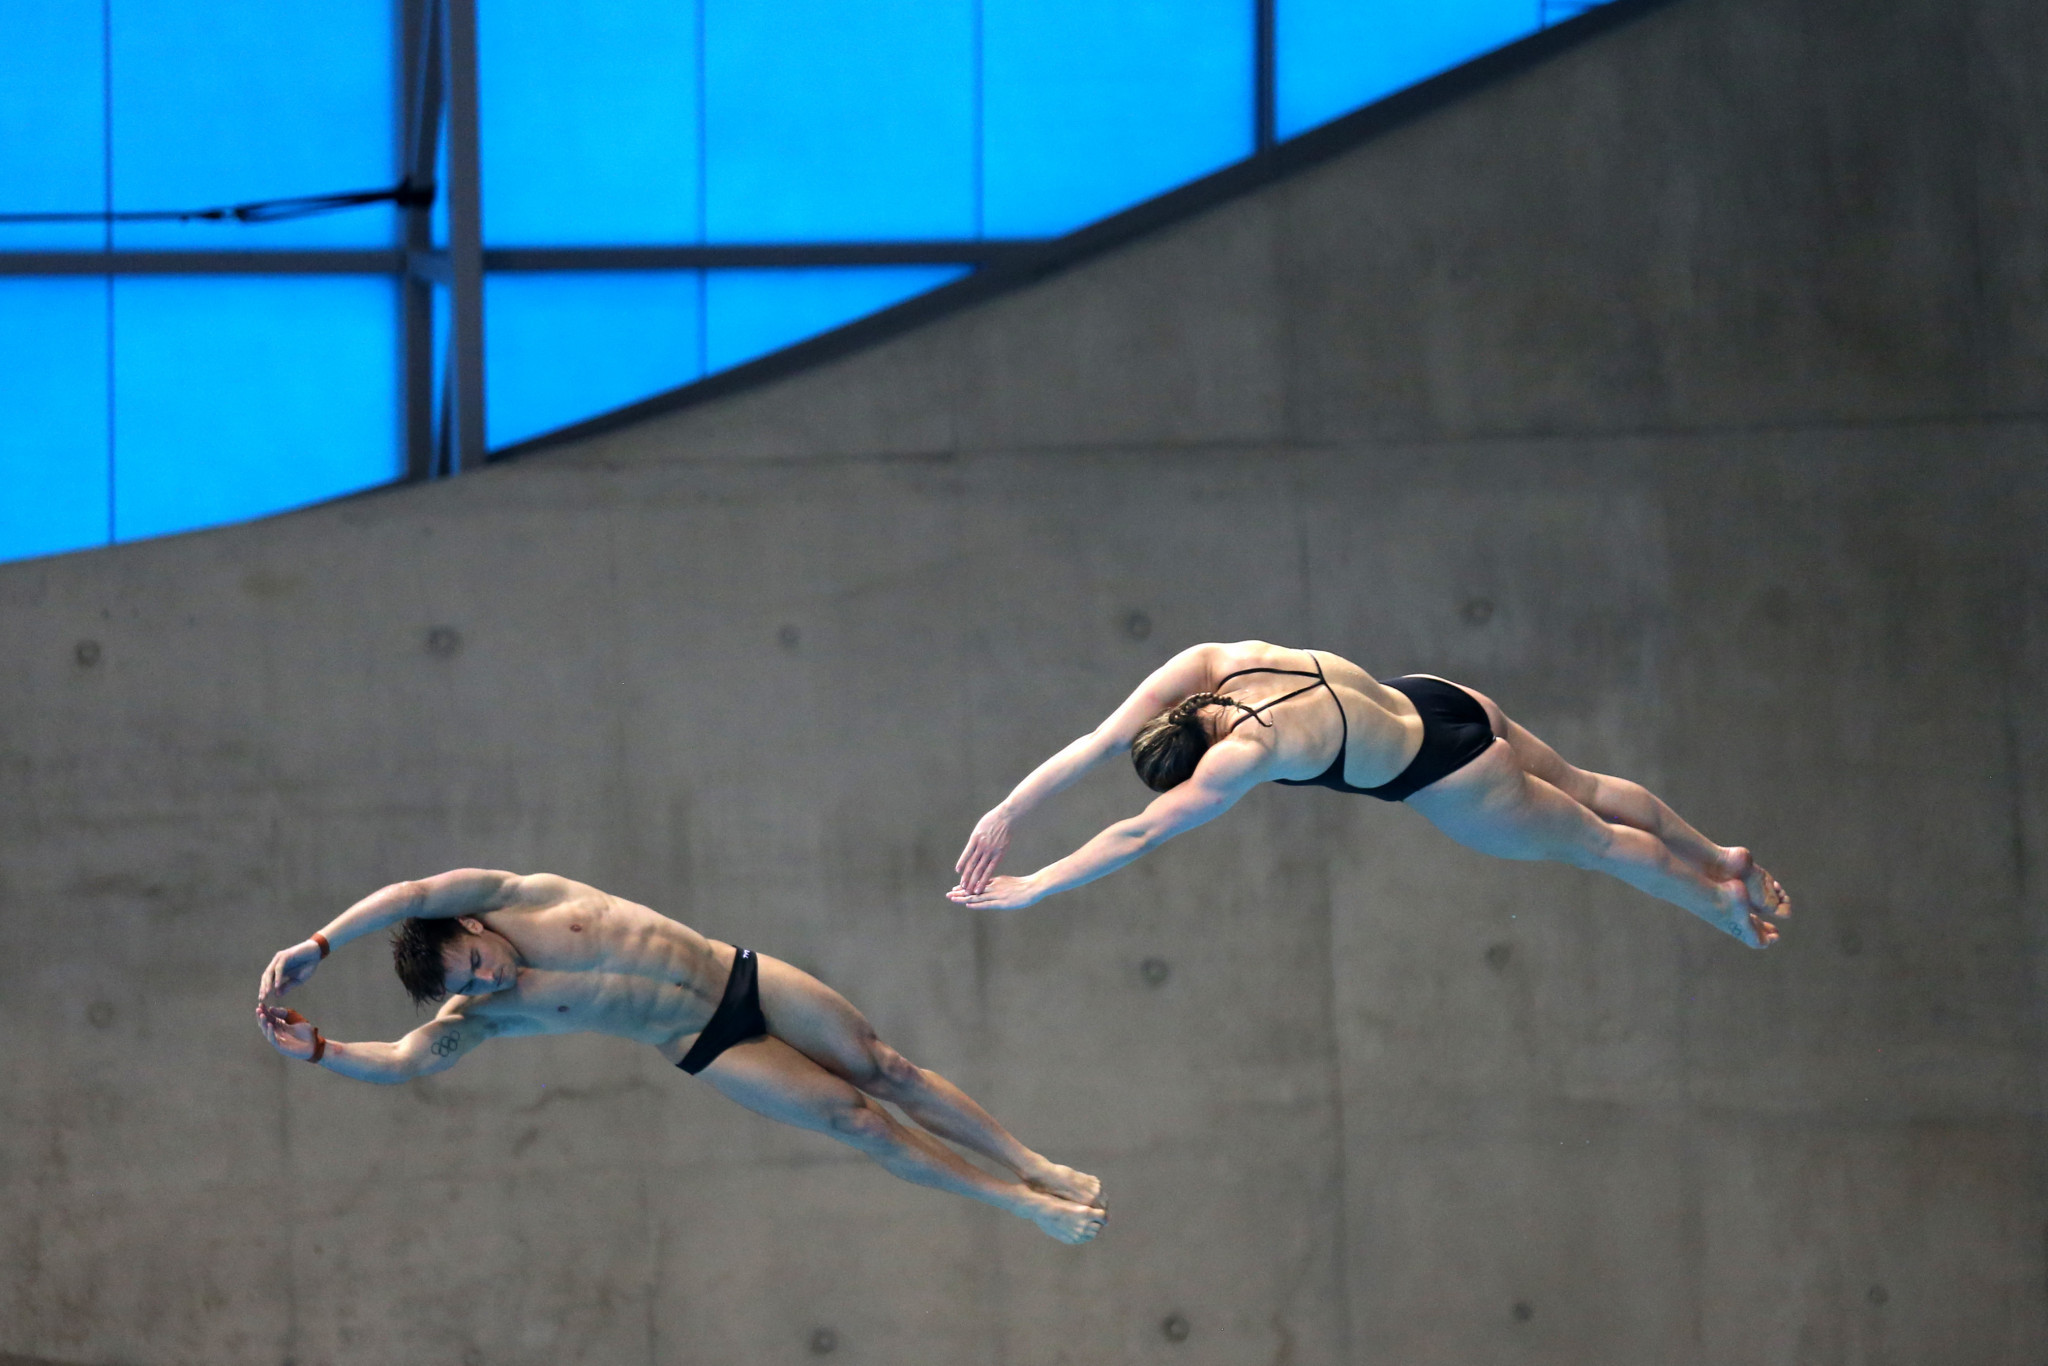 Chinese leg of FINA Diving World Series cancelled due to coronavirus outbreak